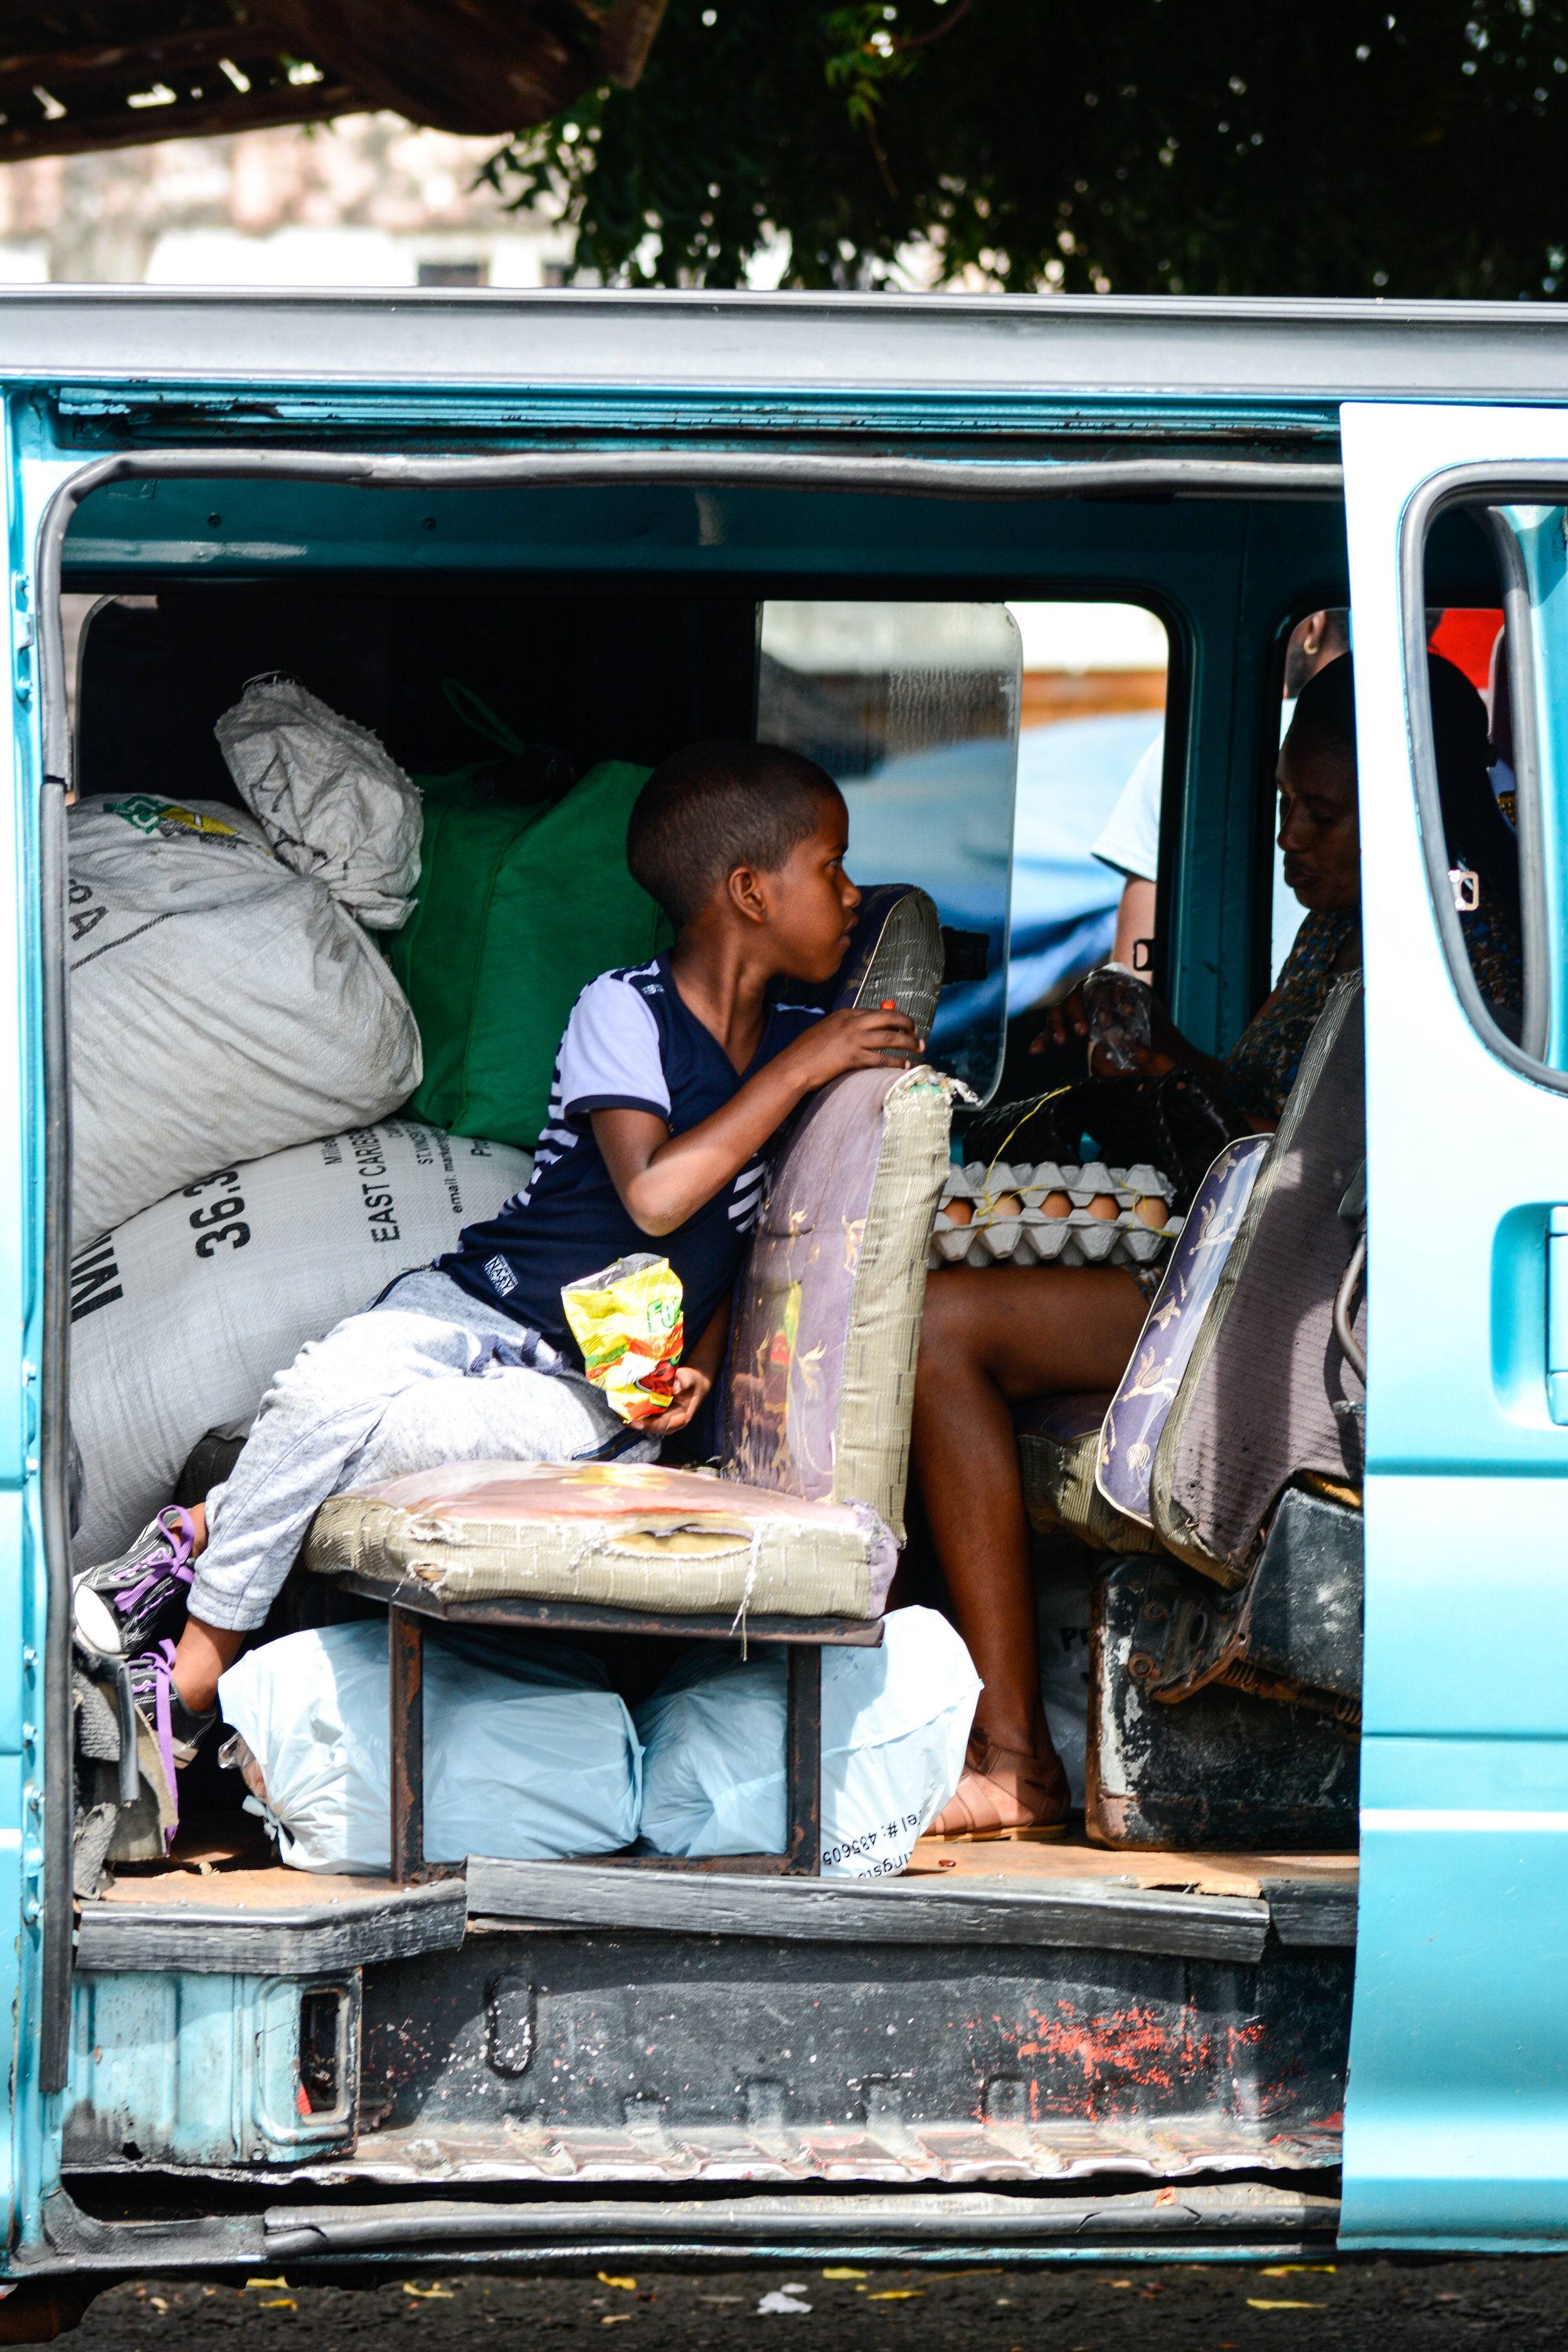 You can tell when the vans are headed to the country side because the passengers load up with heavy cargo as they make their weekly trips into town. Many of these people have to carry their flour sacks full of food up mountain paths to their homes.